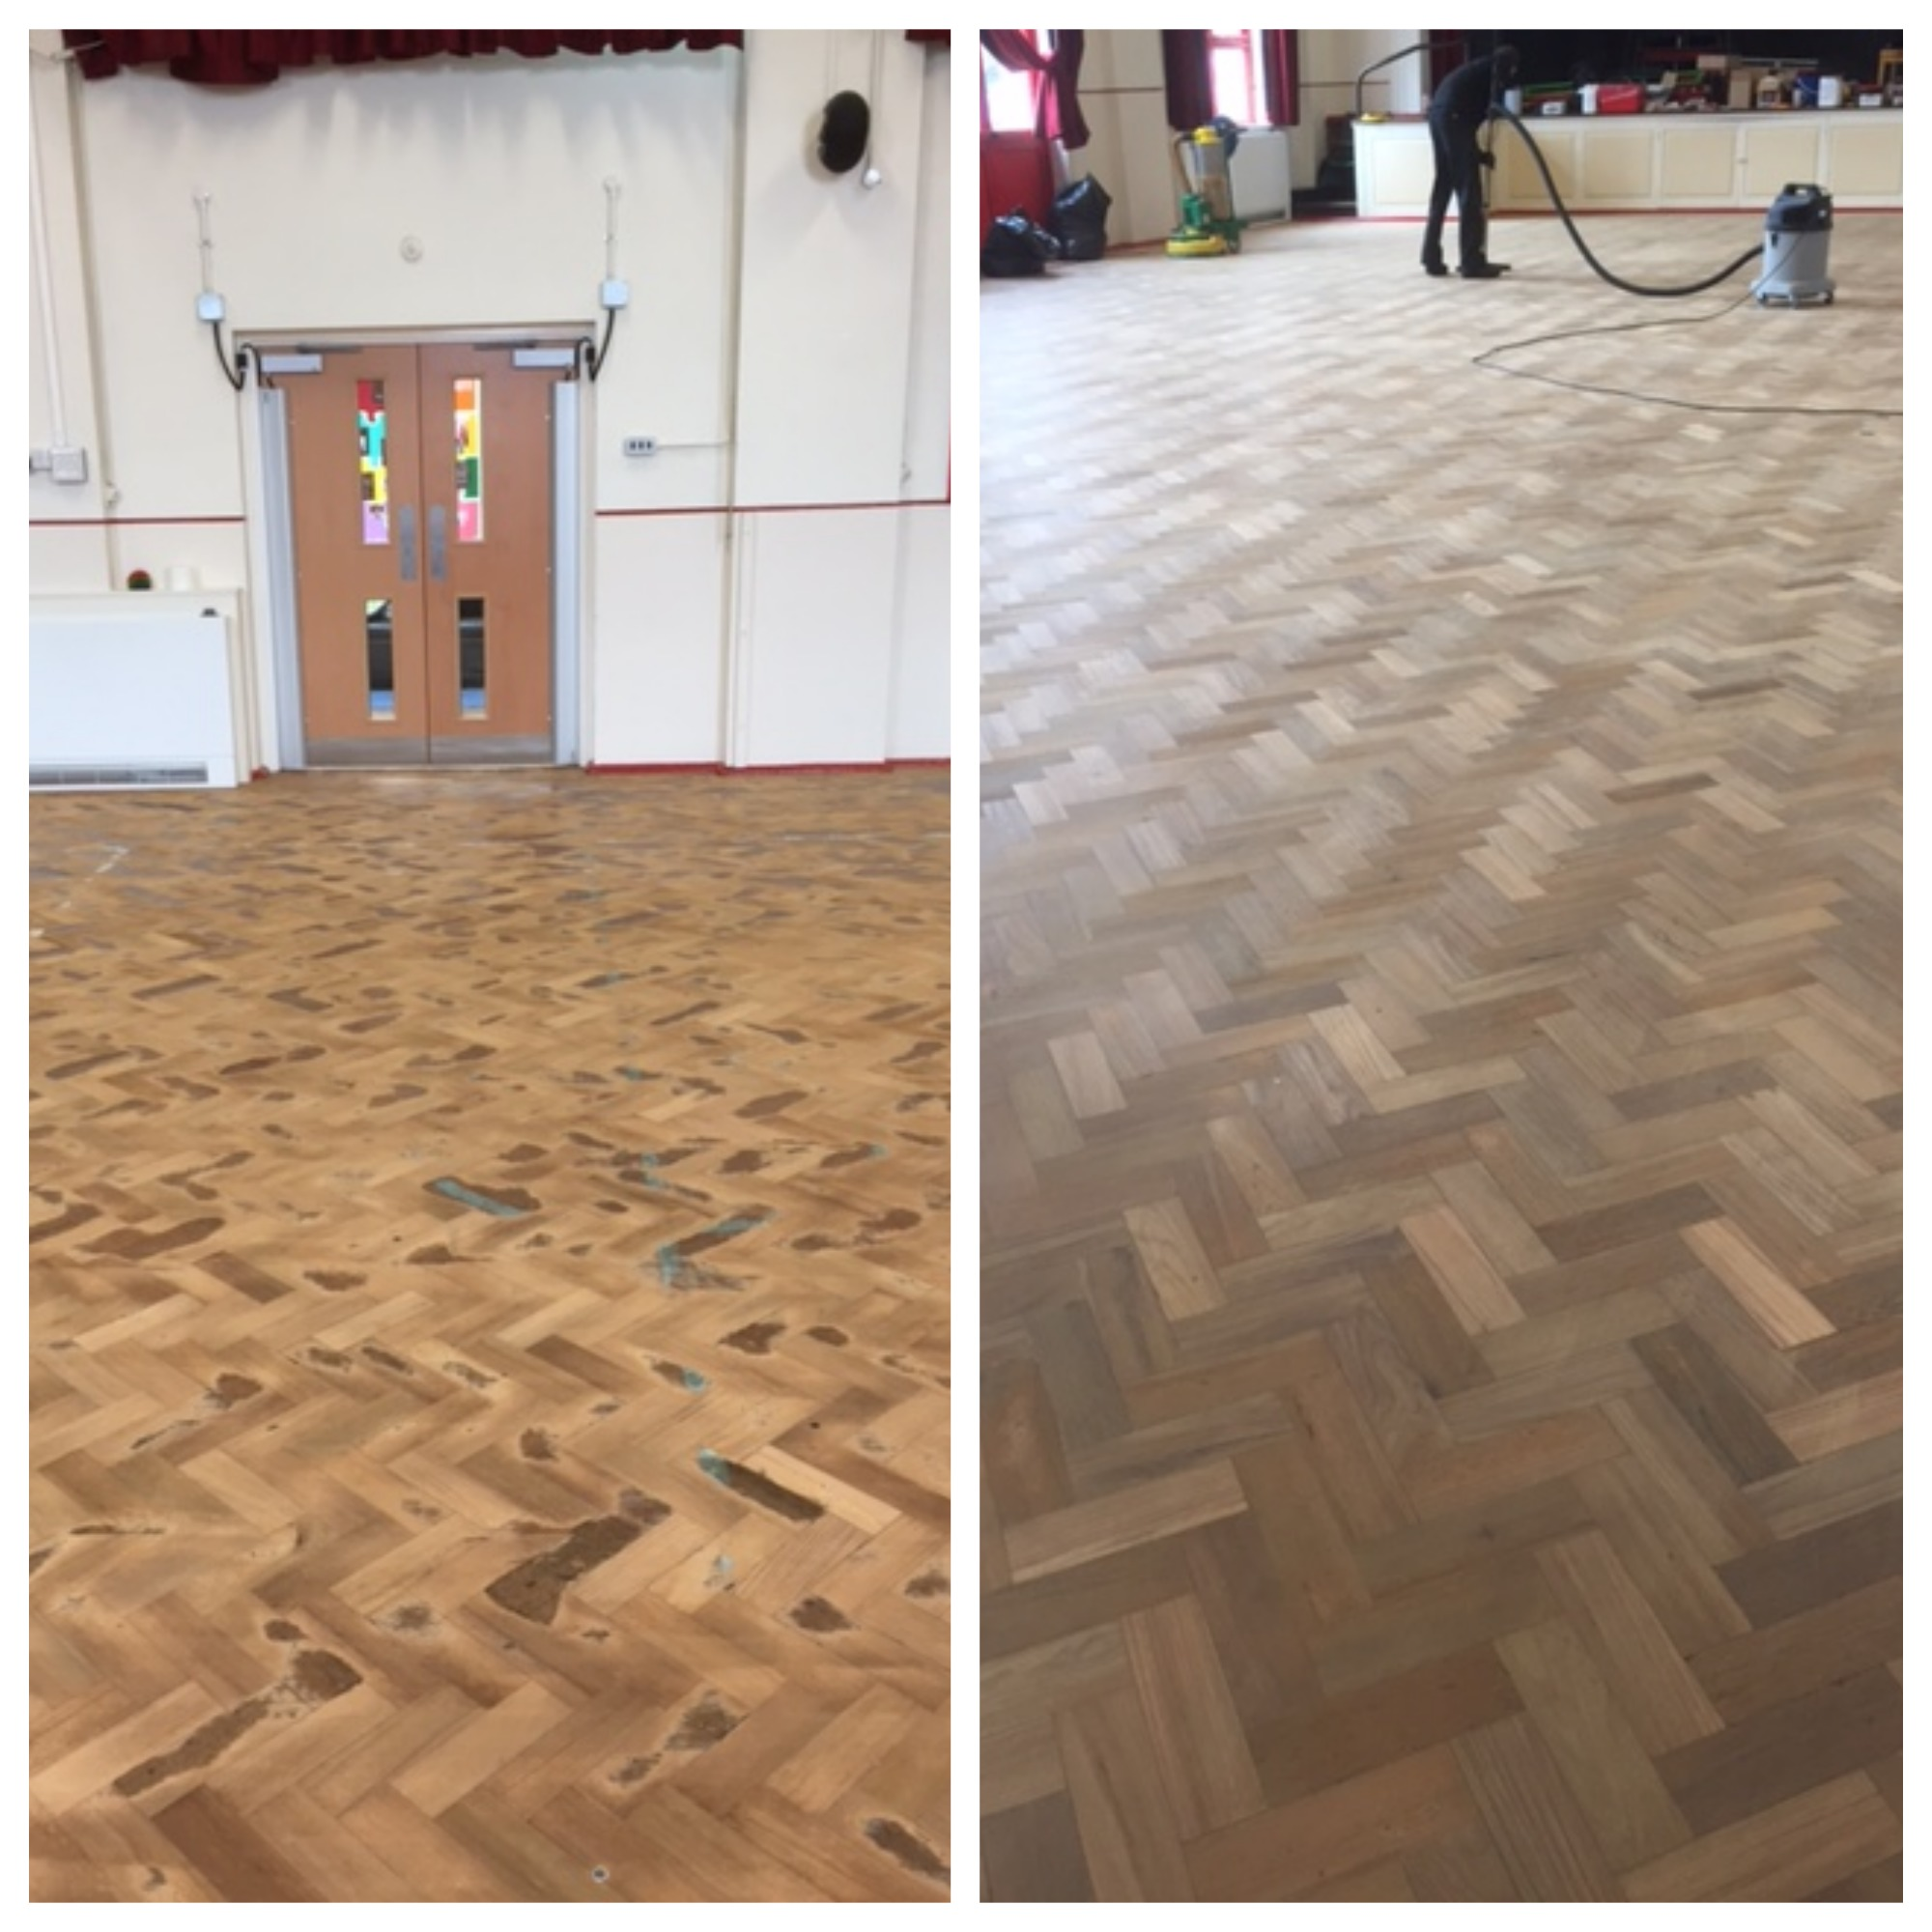 flooring battens rows laminate background floor close freebie htm wooden of horizontal slides brown made image up parquet